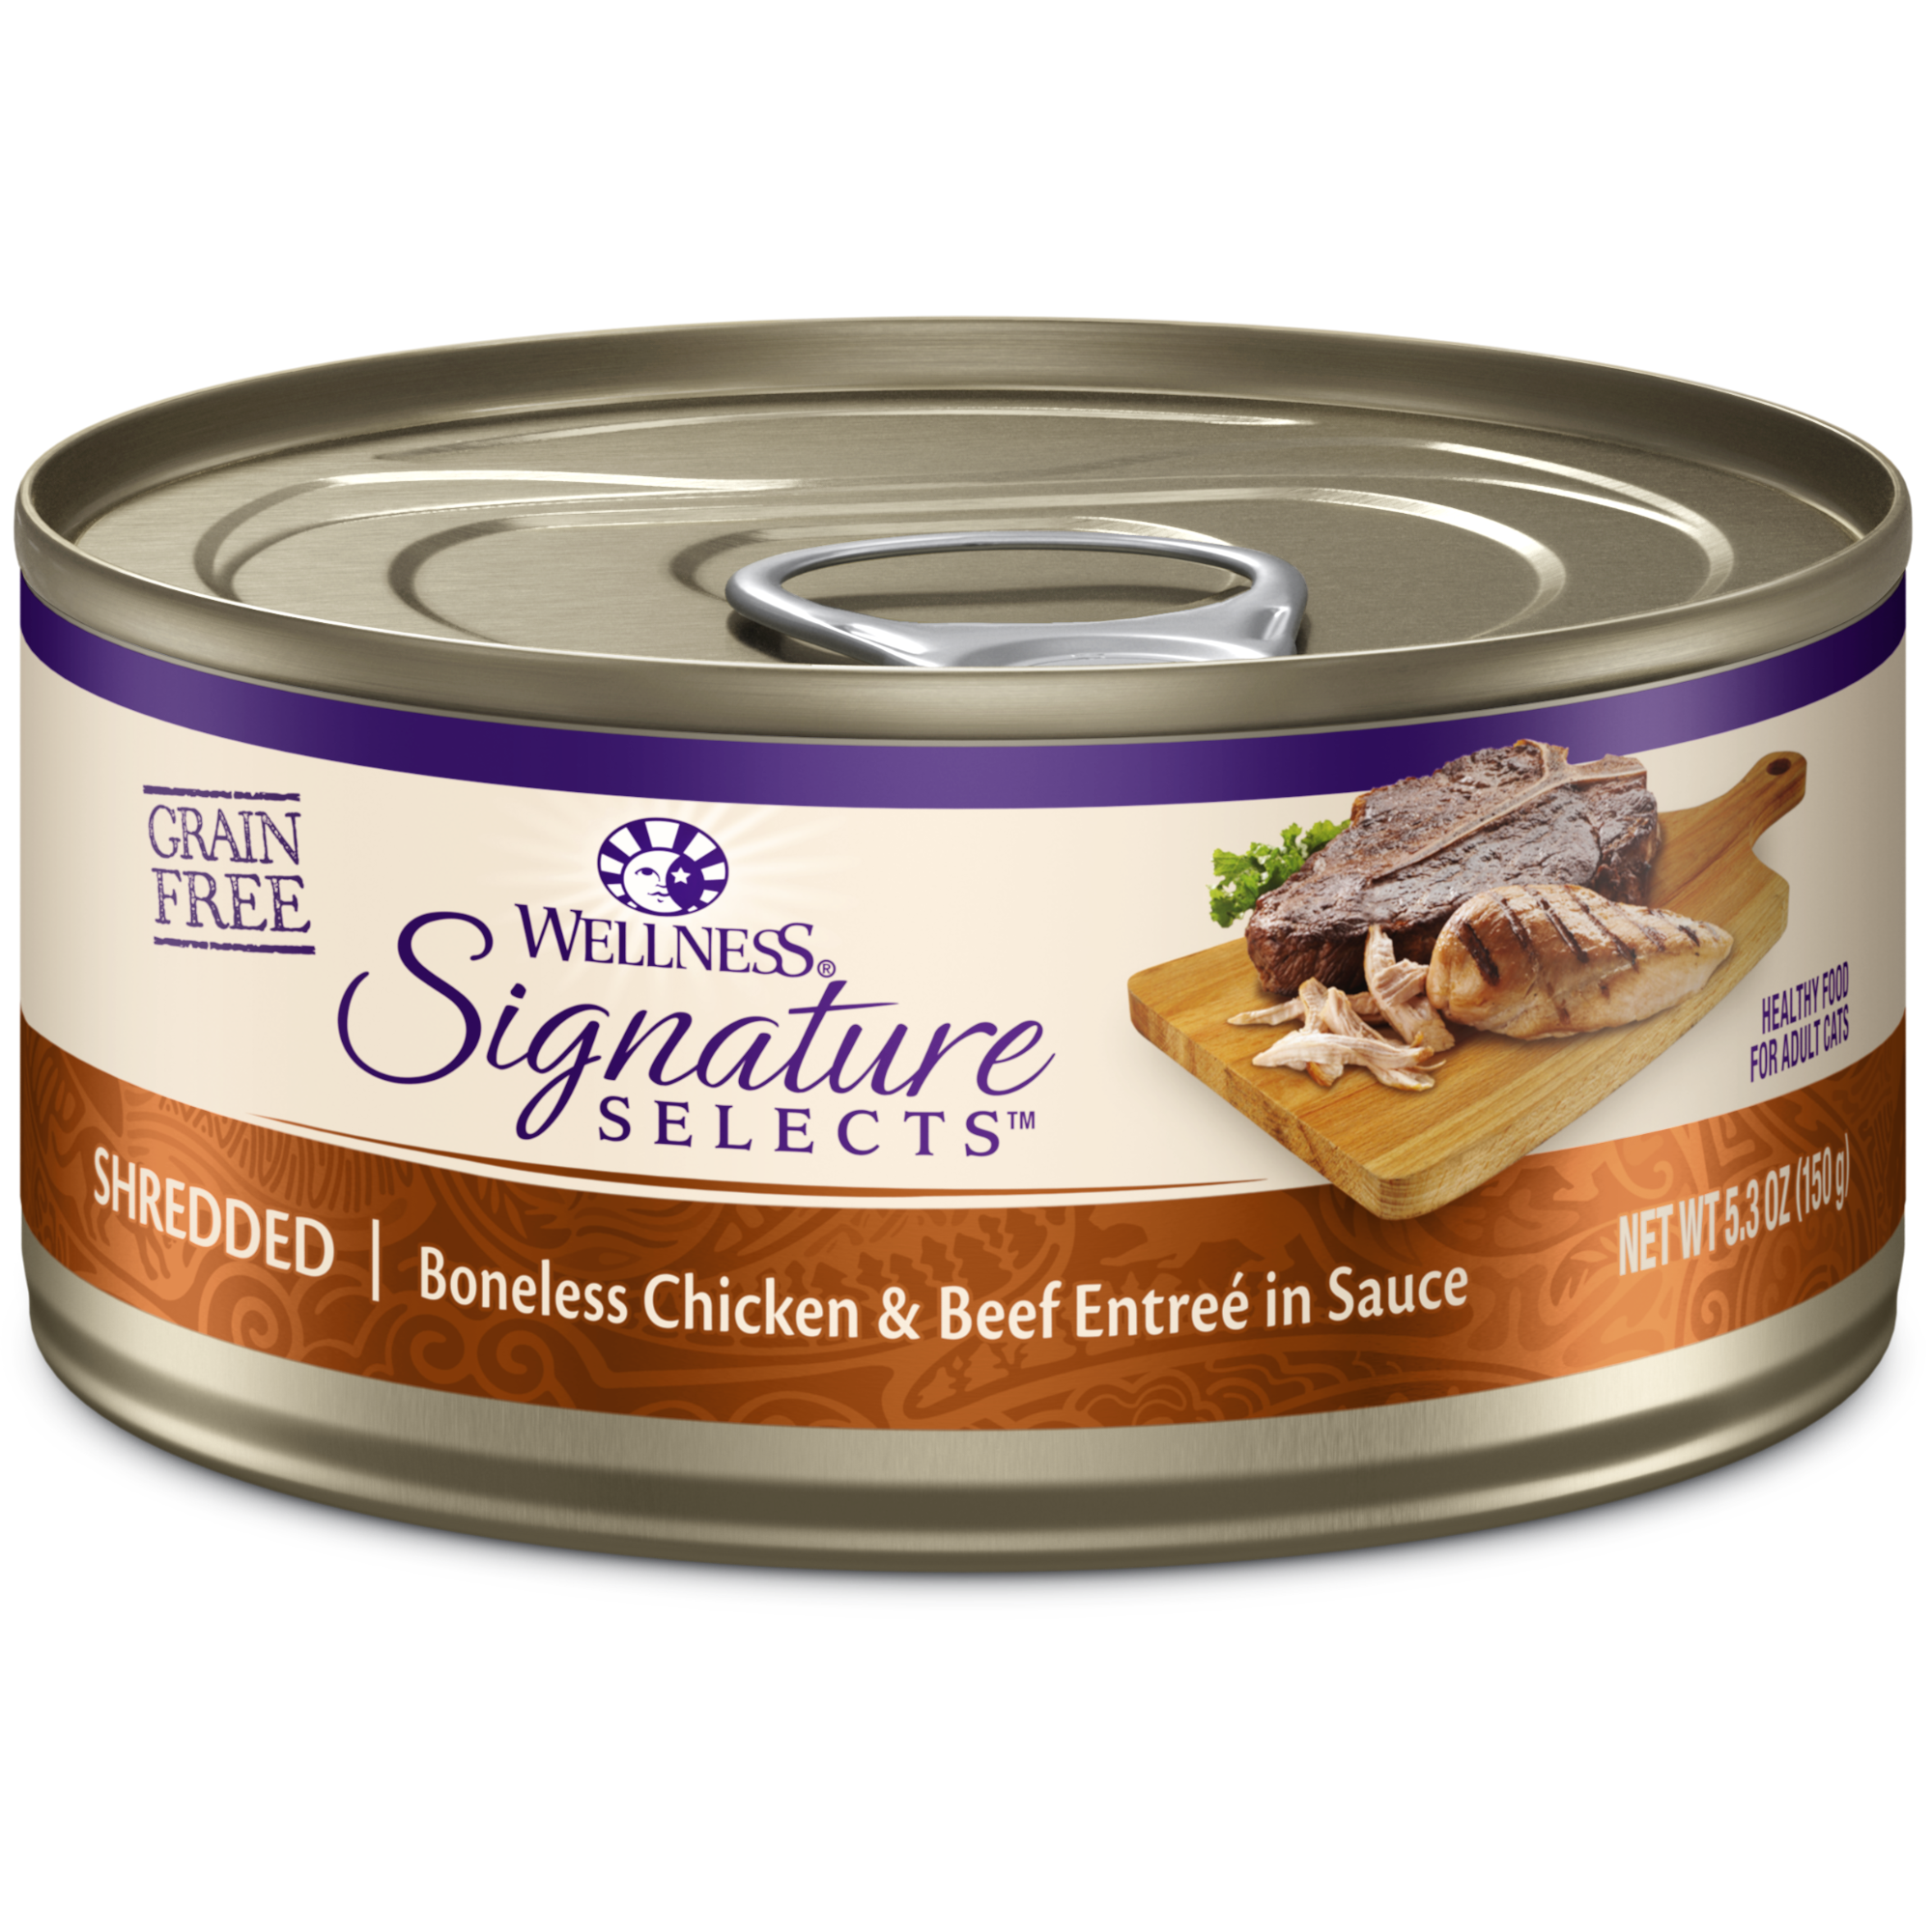 Signature Selects Shredded Chicken and Beef